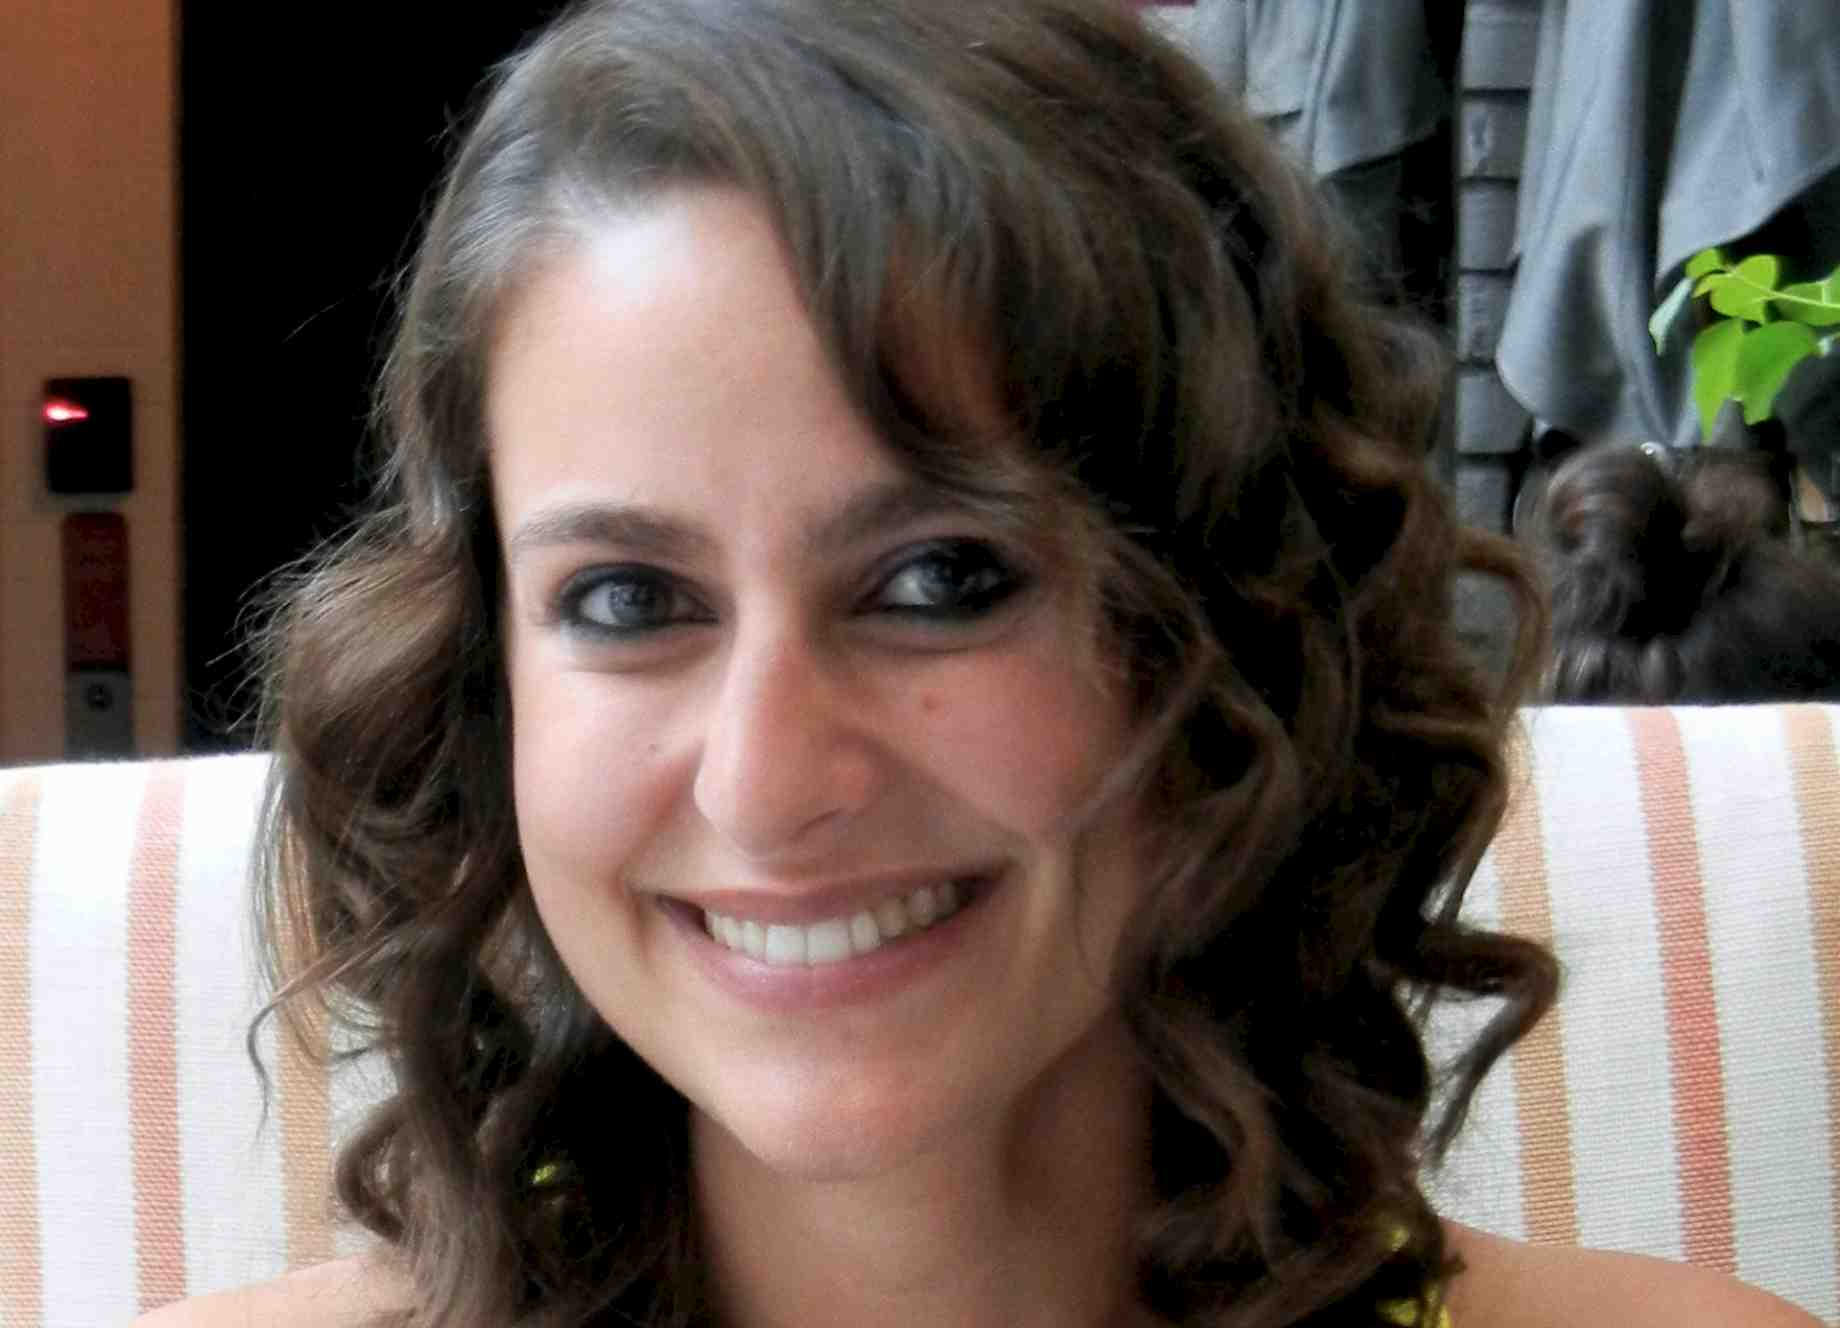 uf essay help thesis uf descriptive essay help uf essay help review help thesis professional essay writers list registration middot writing college admissions